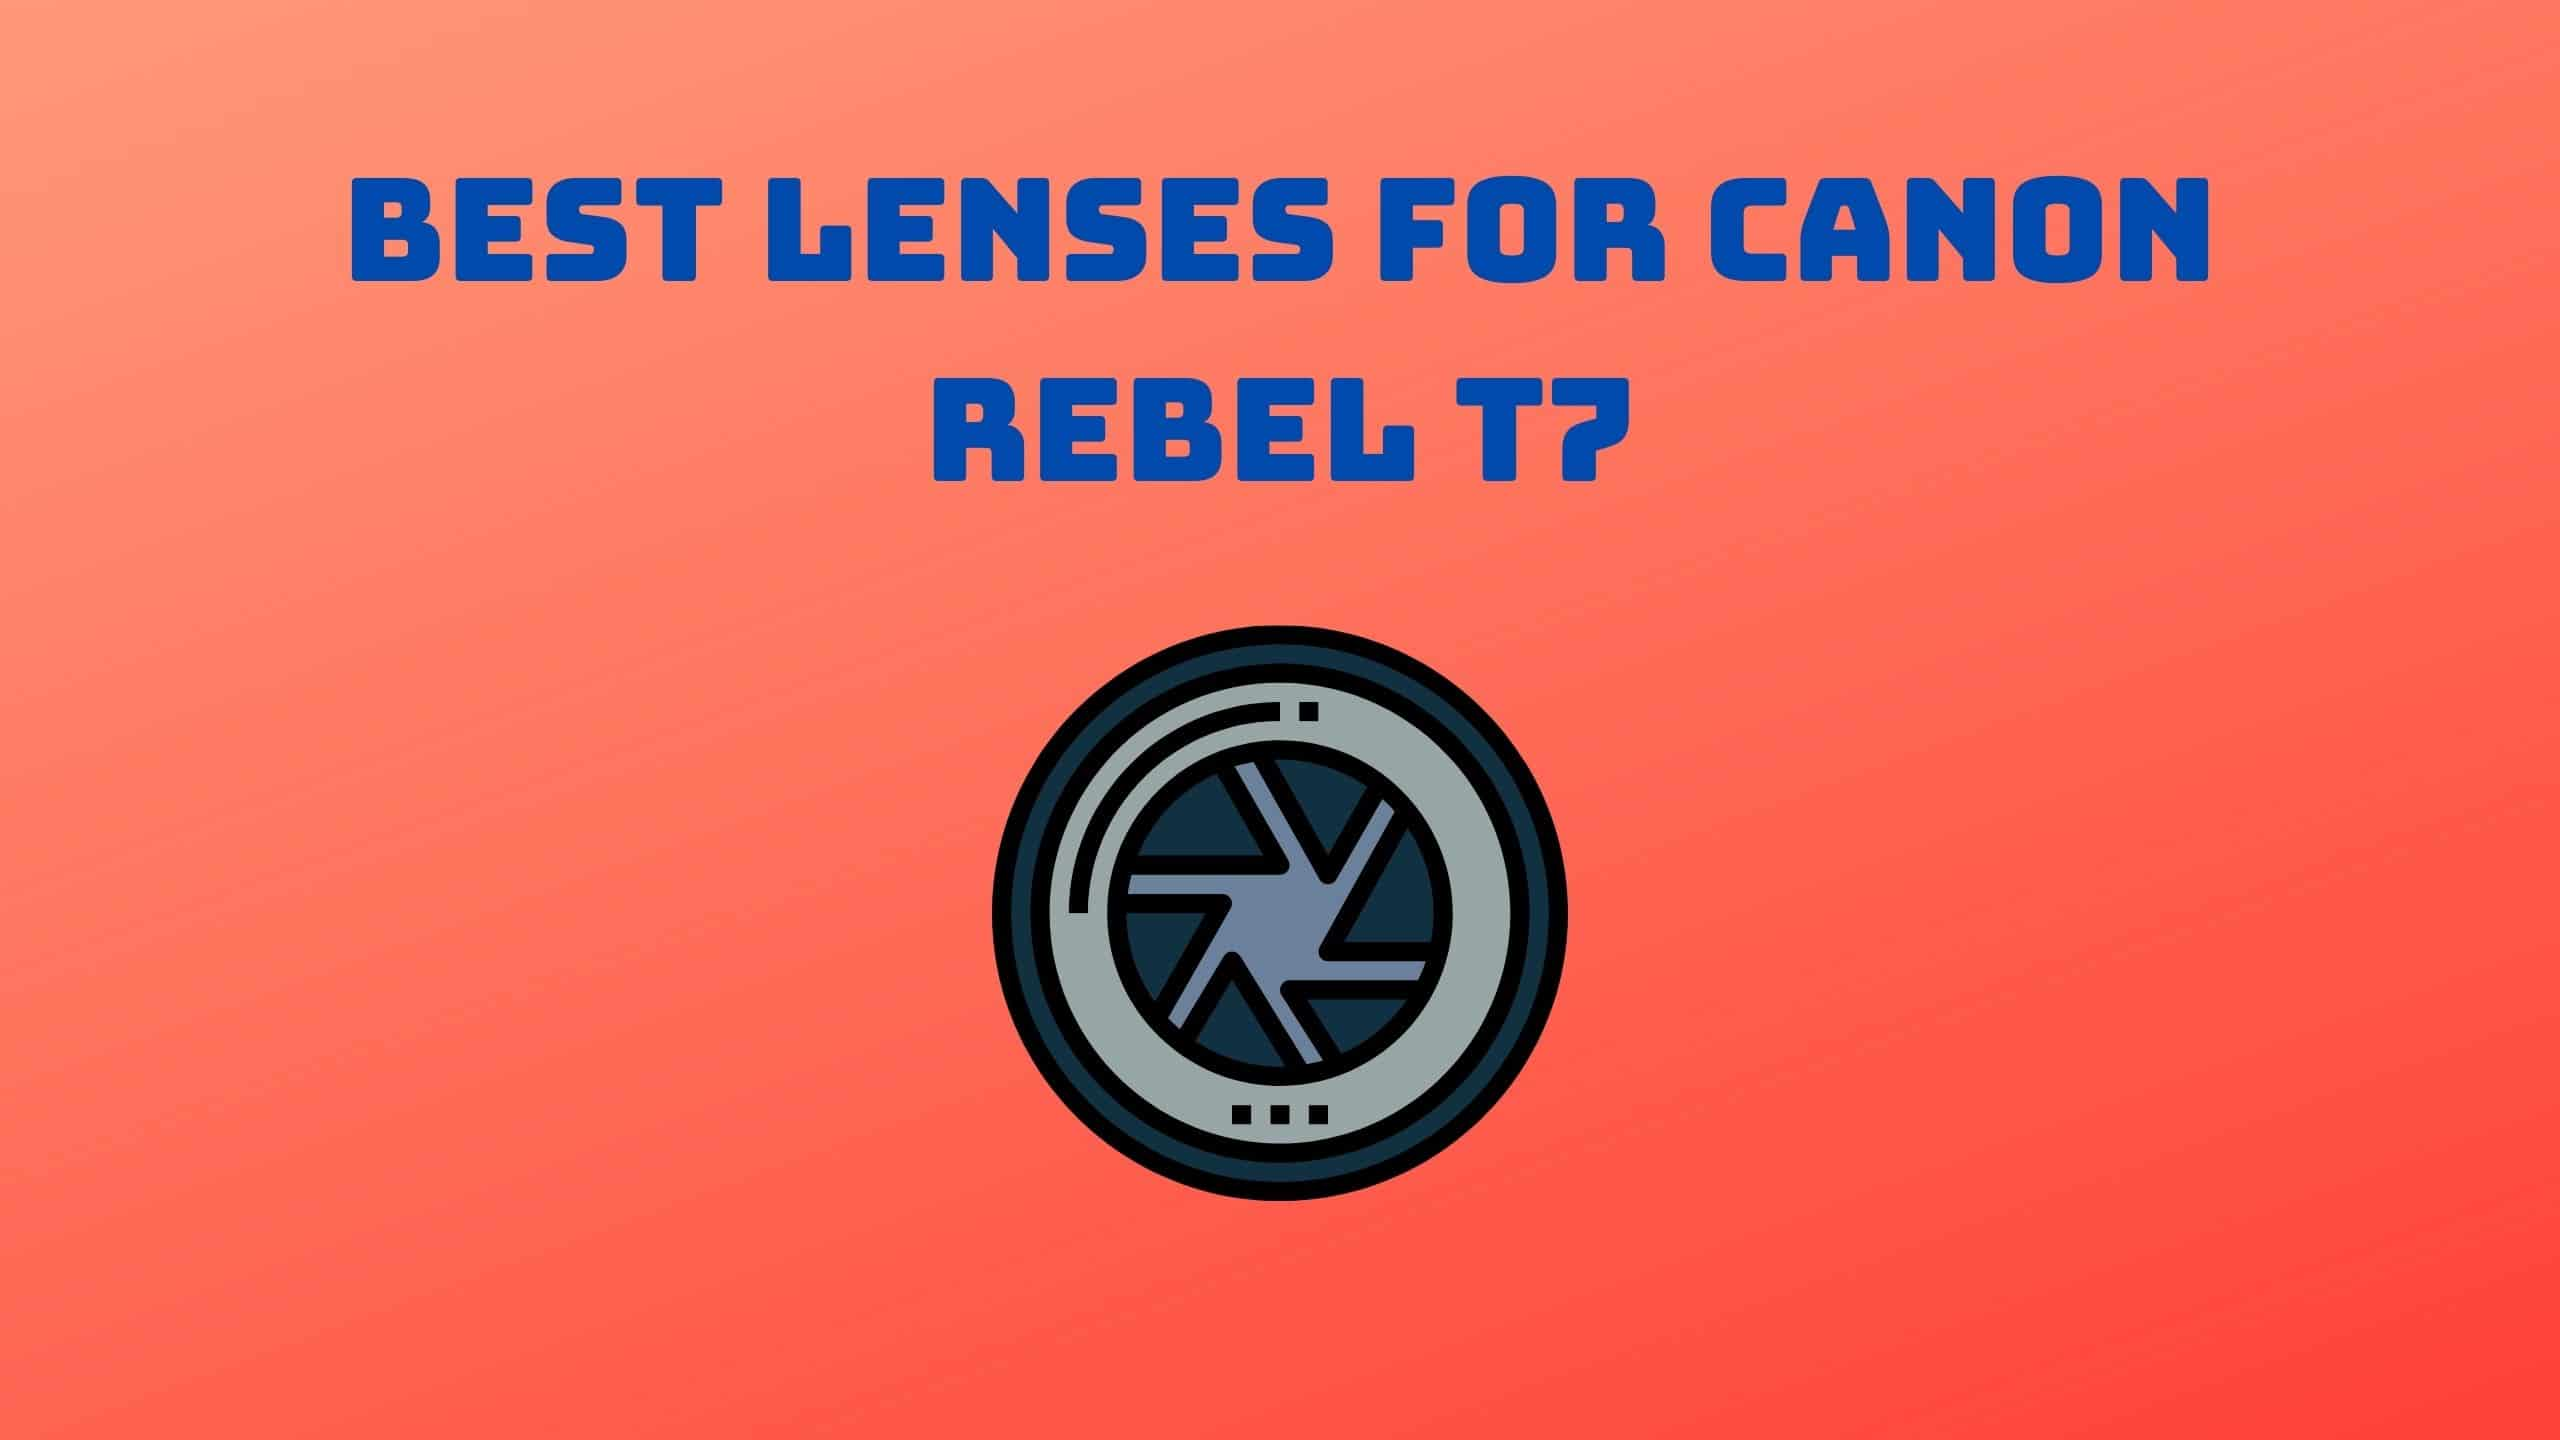 Best Lenses for Canon Rebel T7 (1)